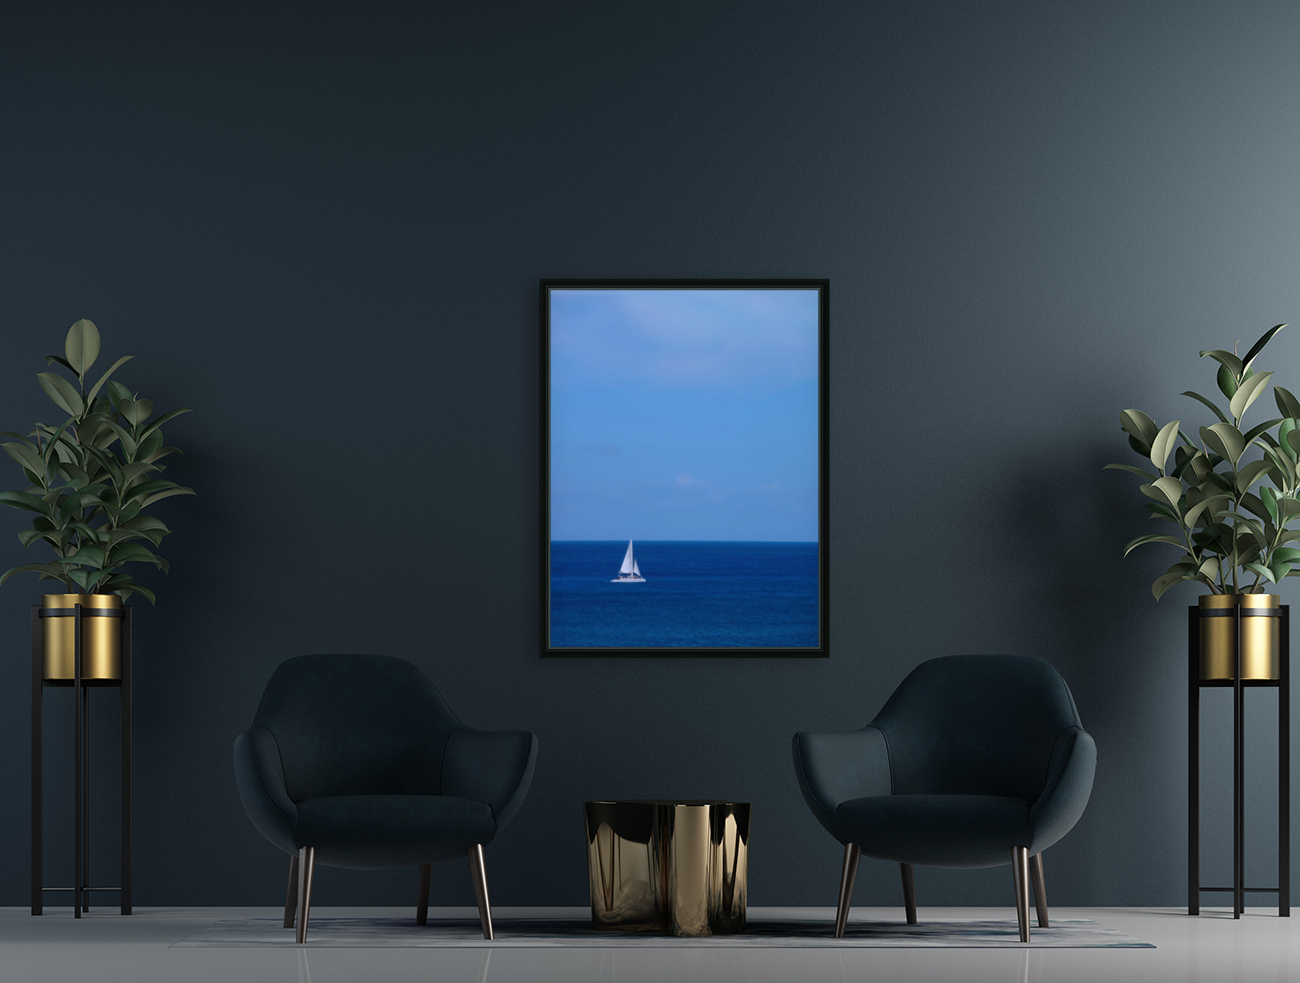 Blue Day - Gallery Artwork of the Year 2017 - Minimalism  Art